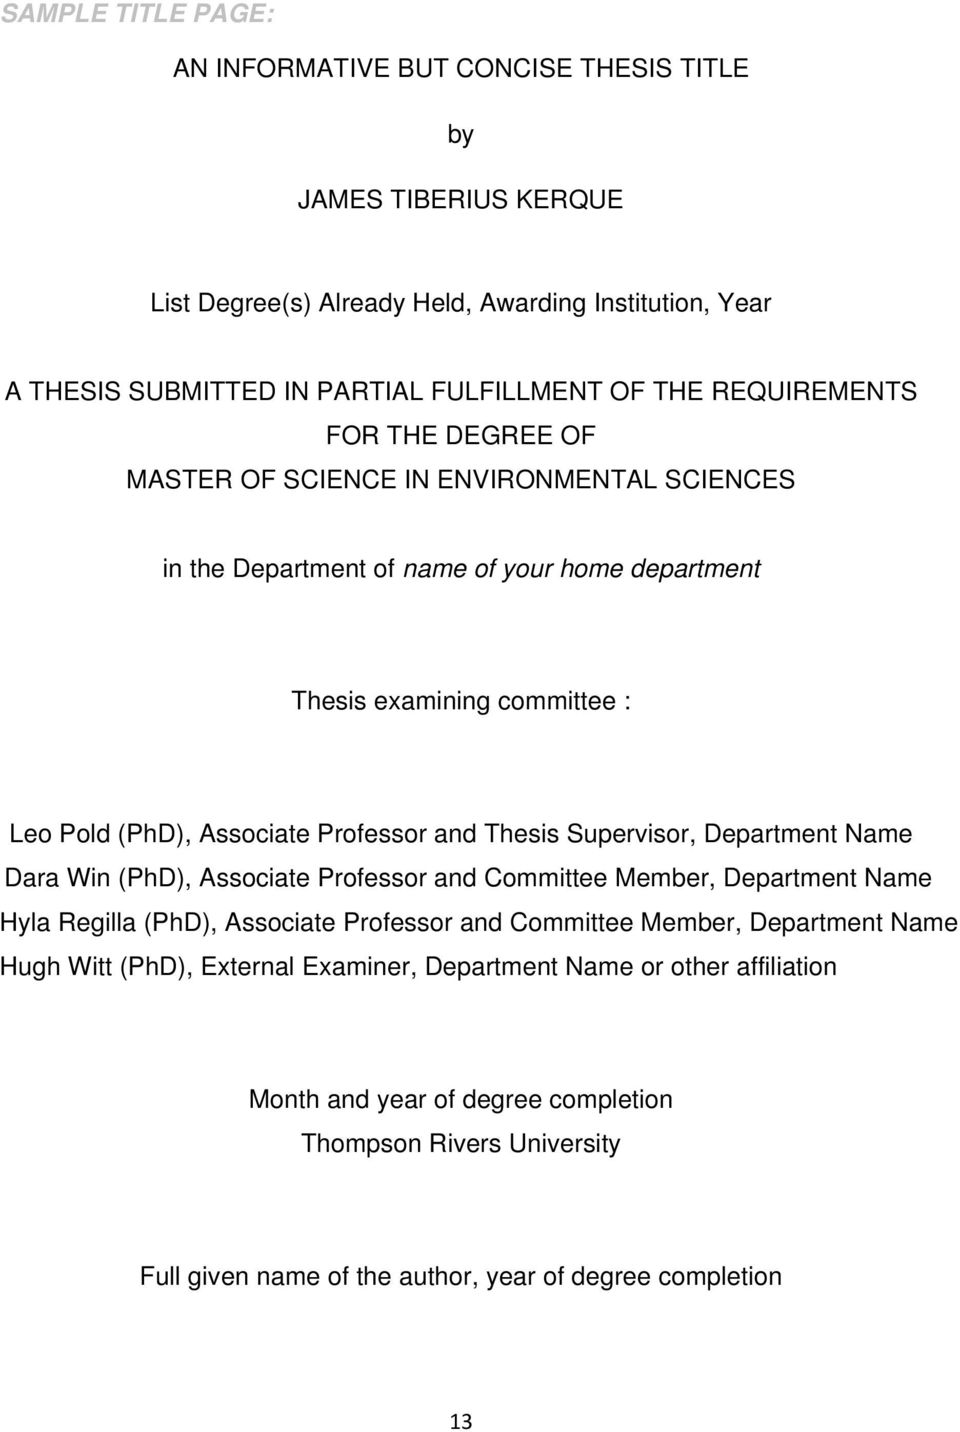 and Thesis Supervisor, Department Name Dara Win (PhD), Associate Professor and Committee Member, Department Name Hyla Regilla (PhD), Associate Professor and Committee Member, Department Name